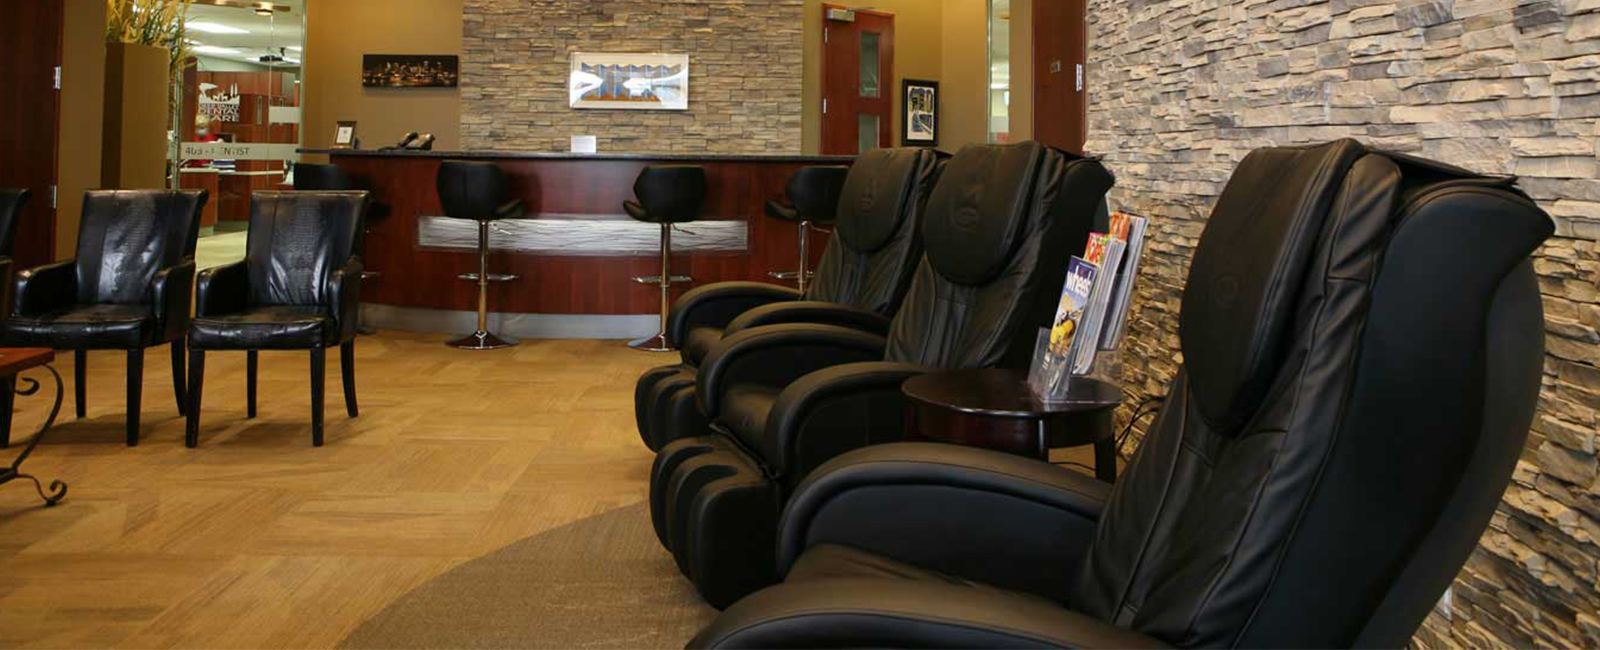 Deer Valley Dental Massage Chairs, Calgary